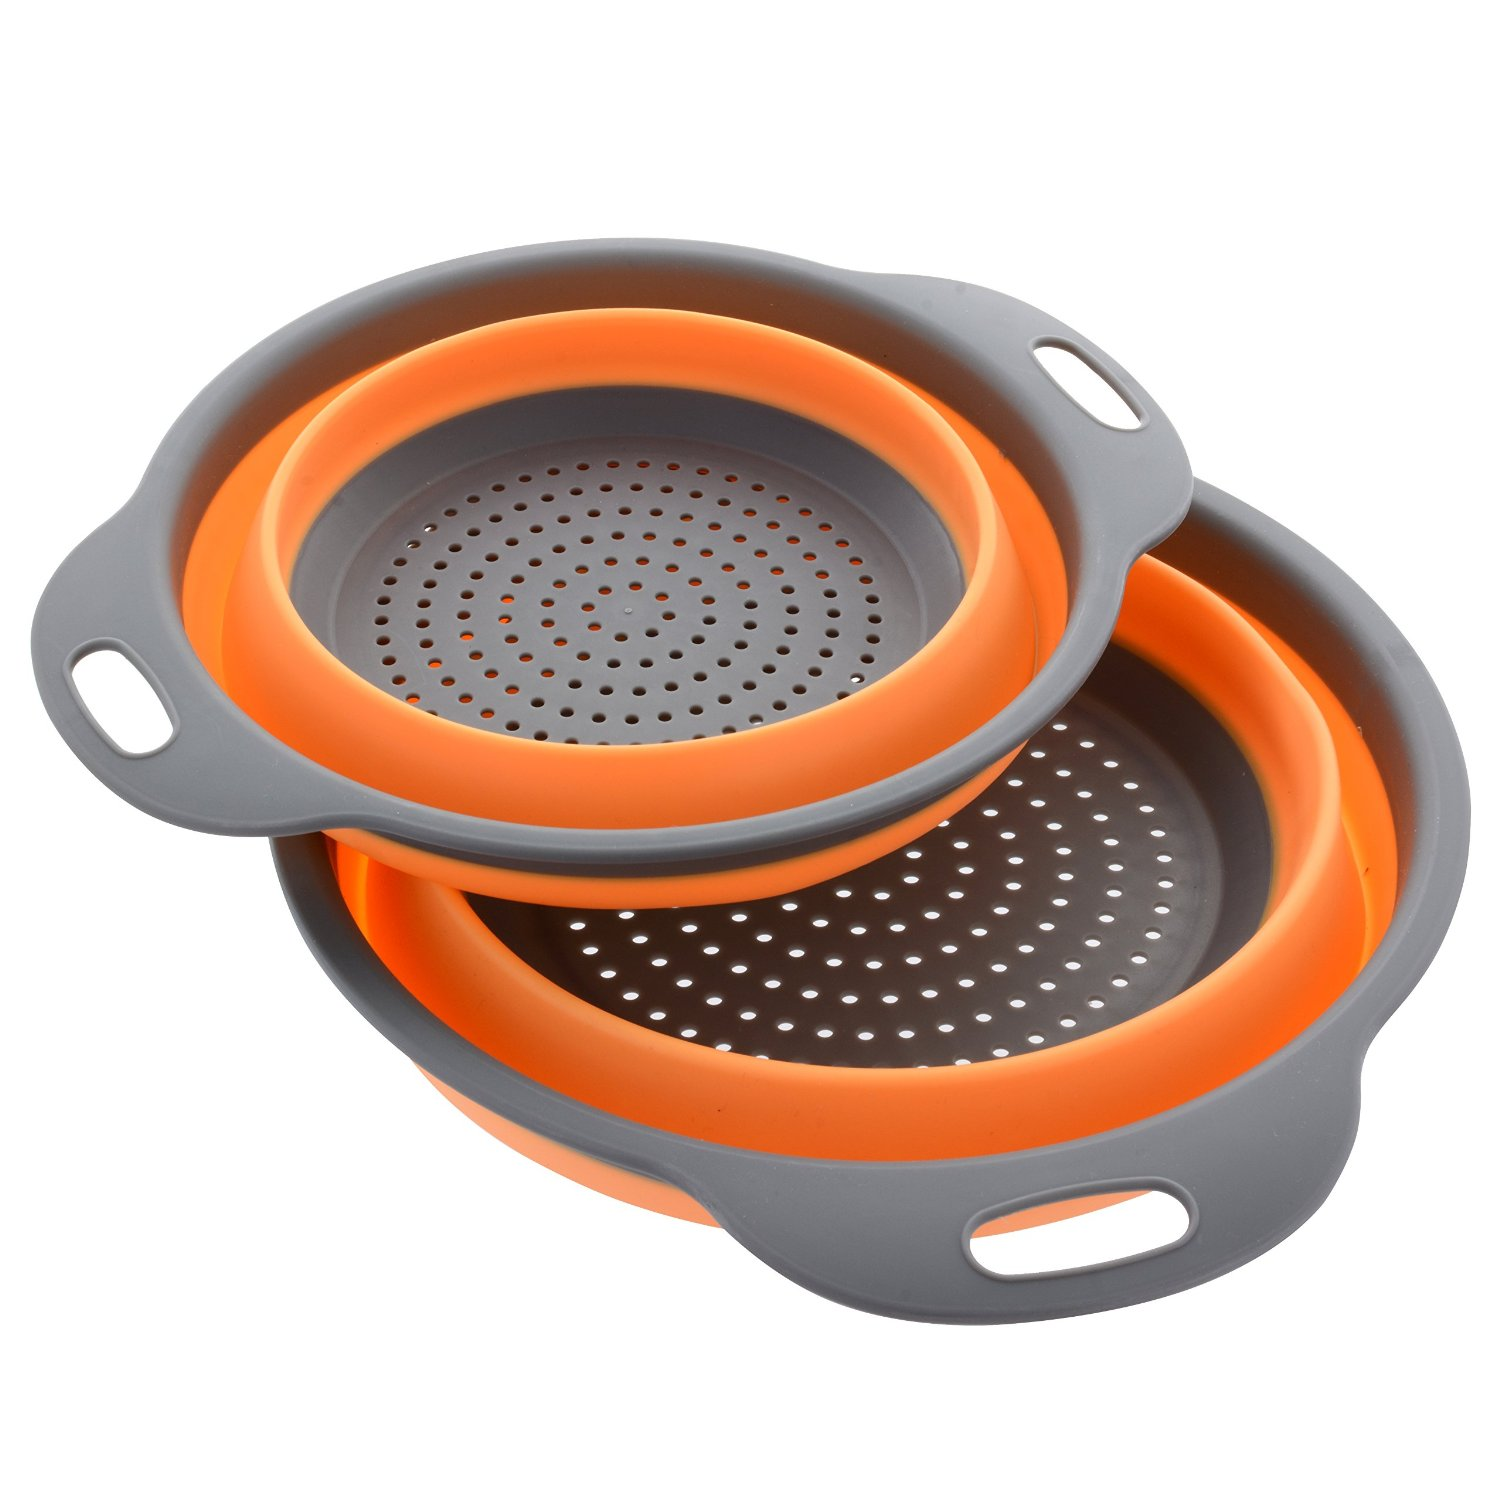 "Click here to buy 2 Collapsible Colanders (Strainers) Set By Comfify Includes 2 Folding Strainers Sizes 8"" 2 Quart and 9.5""."